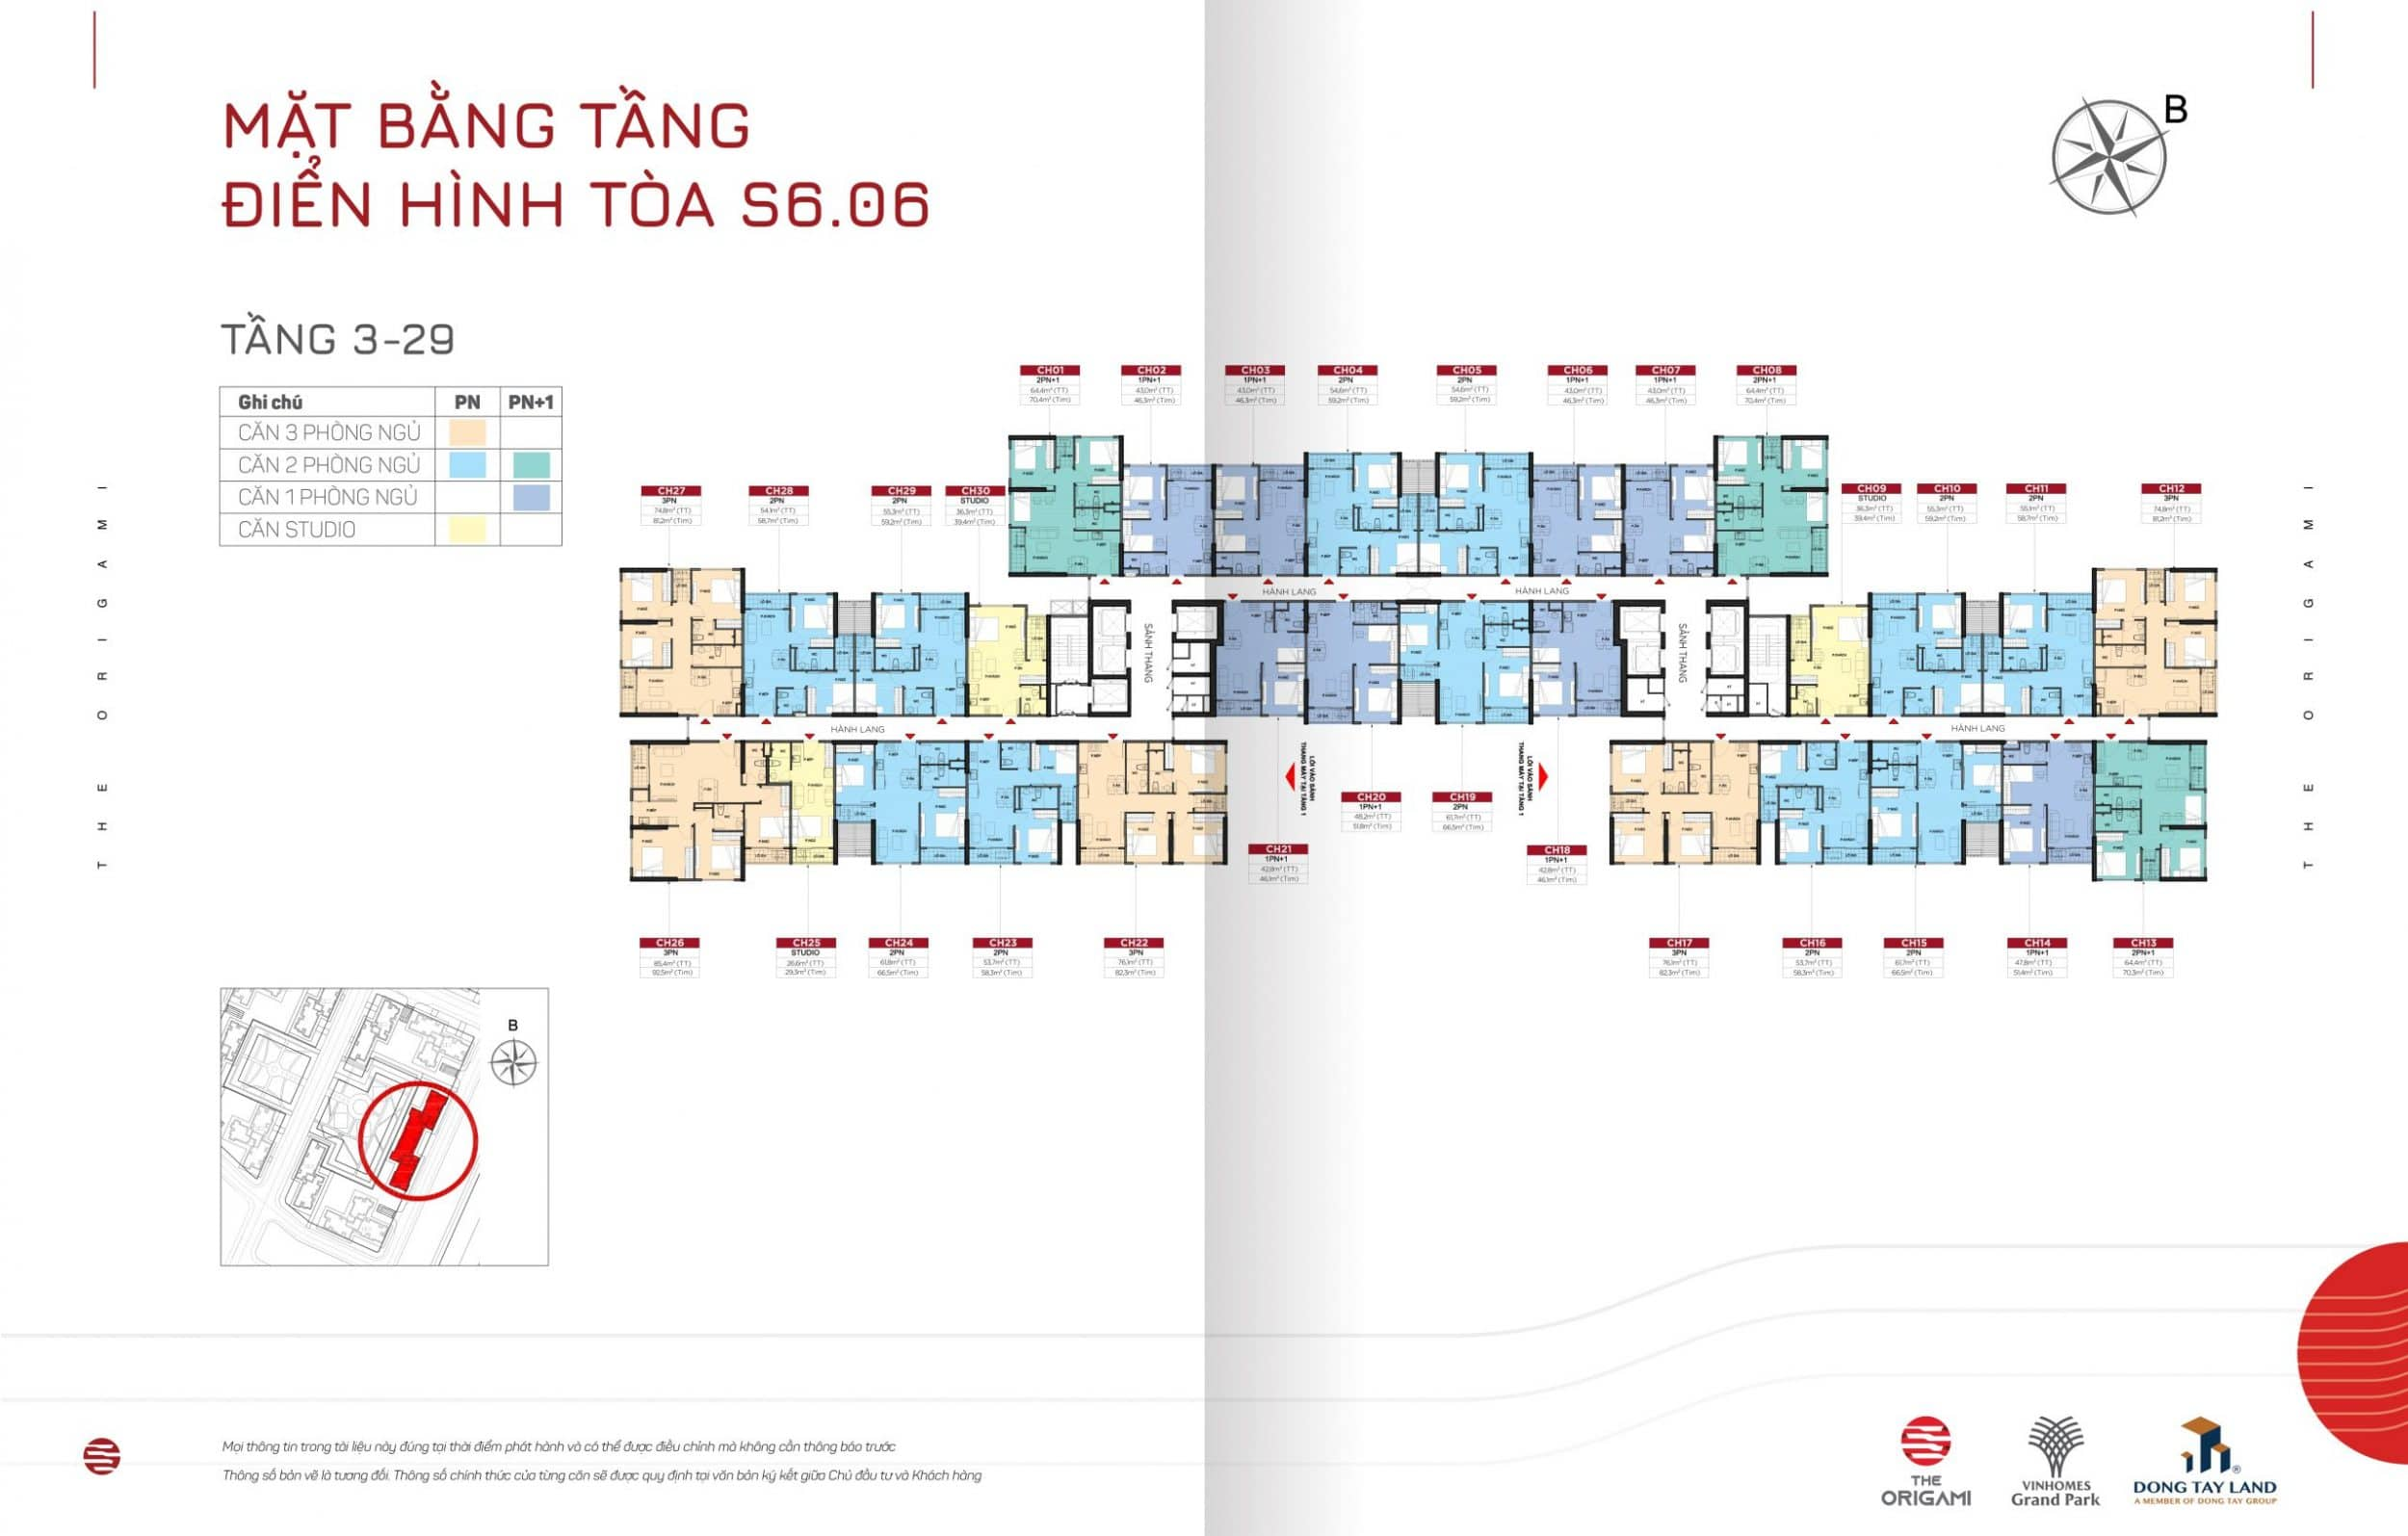 Mặt bằng The Origami toà S6.06-tầng 3-29